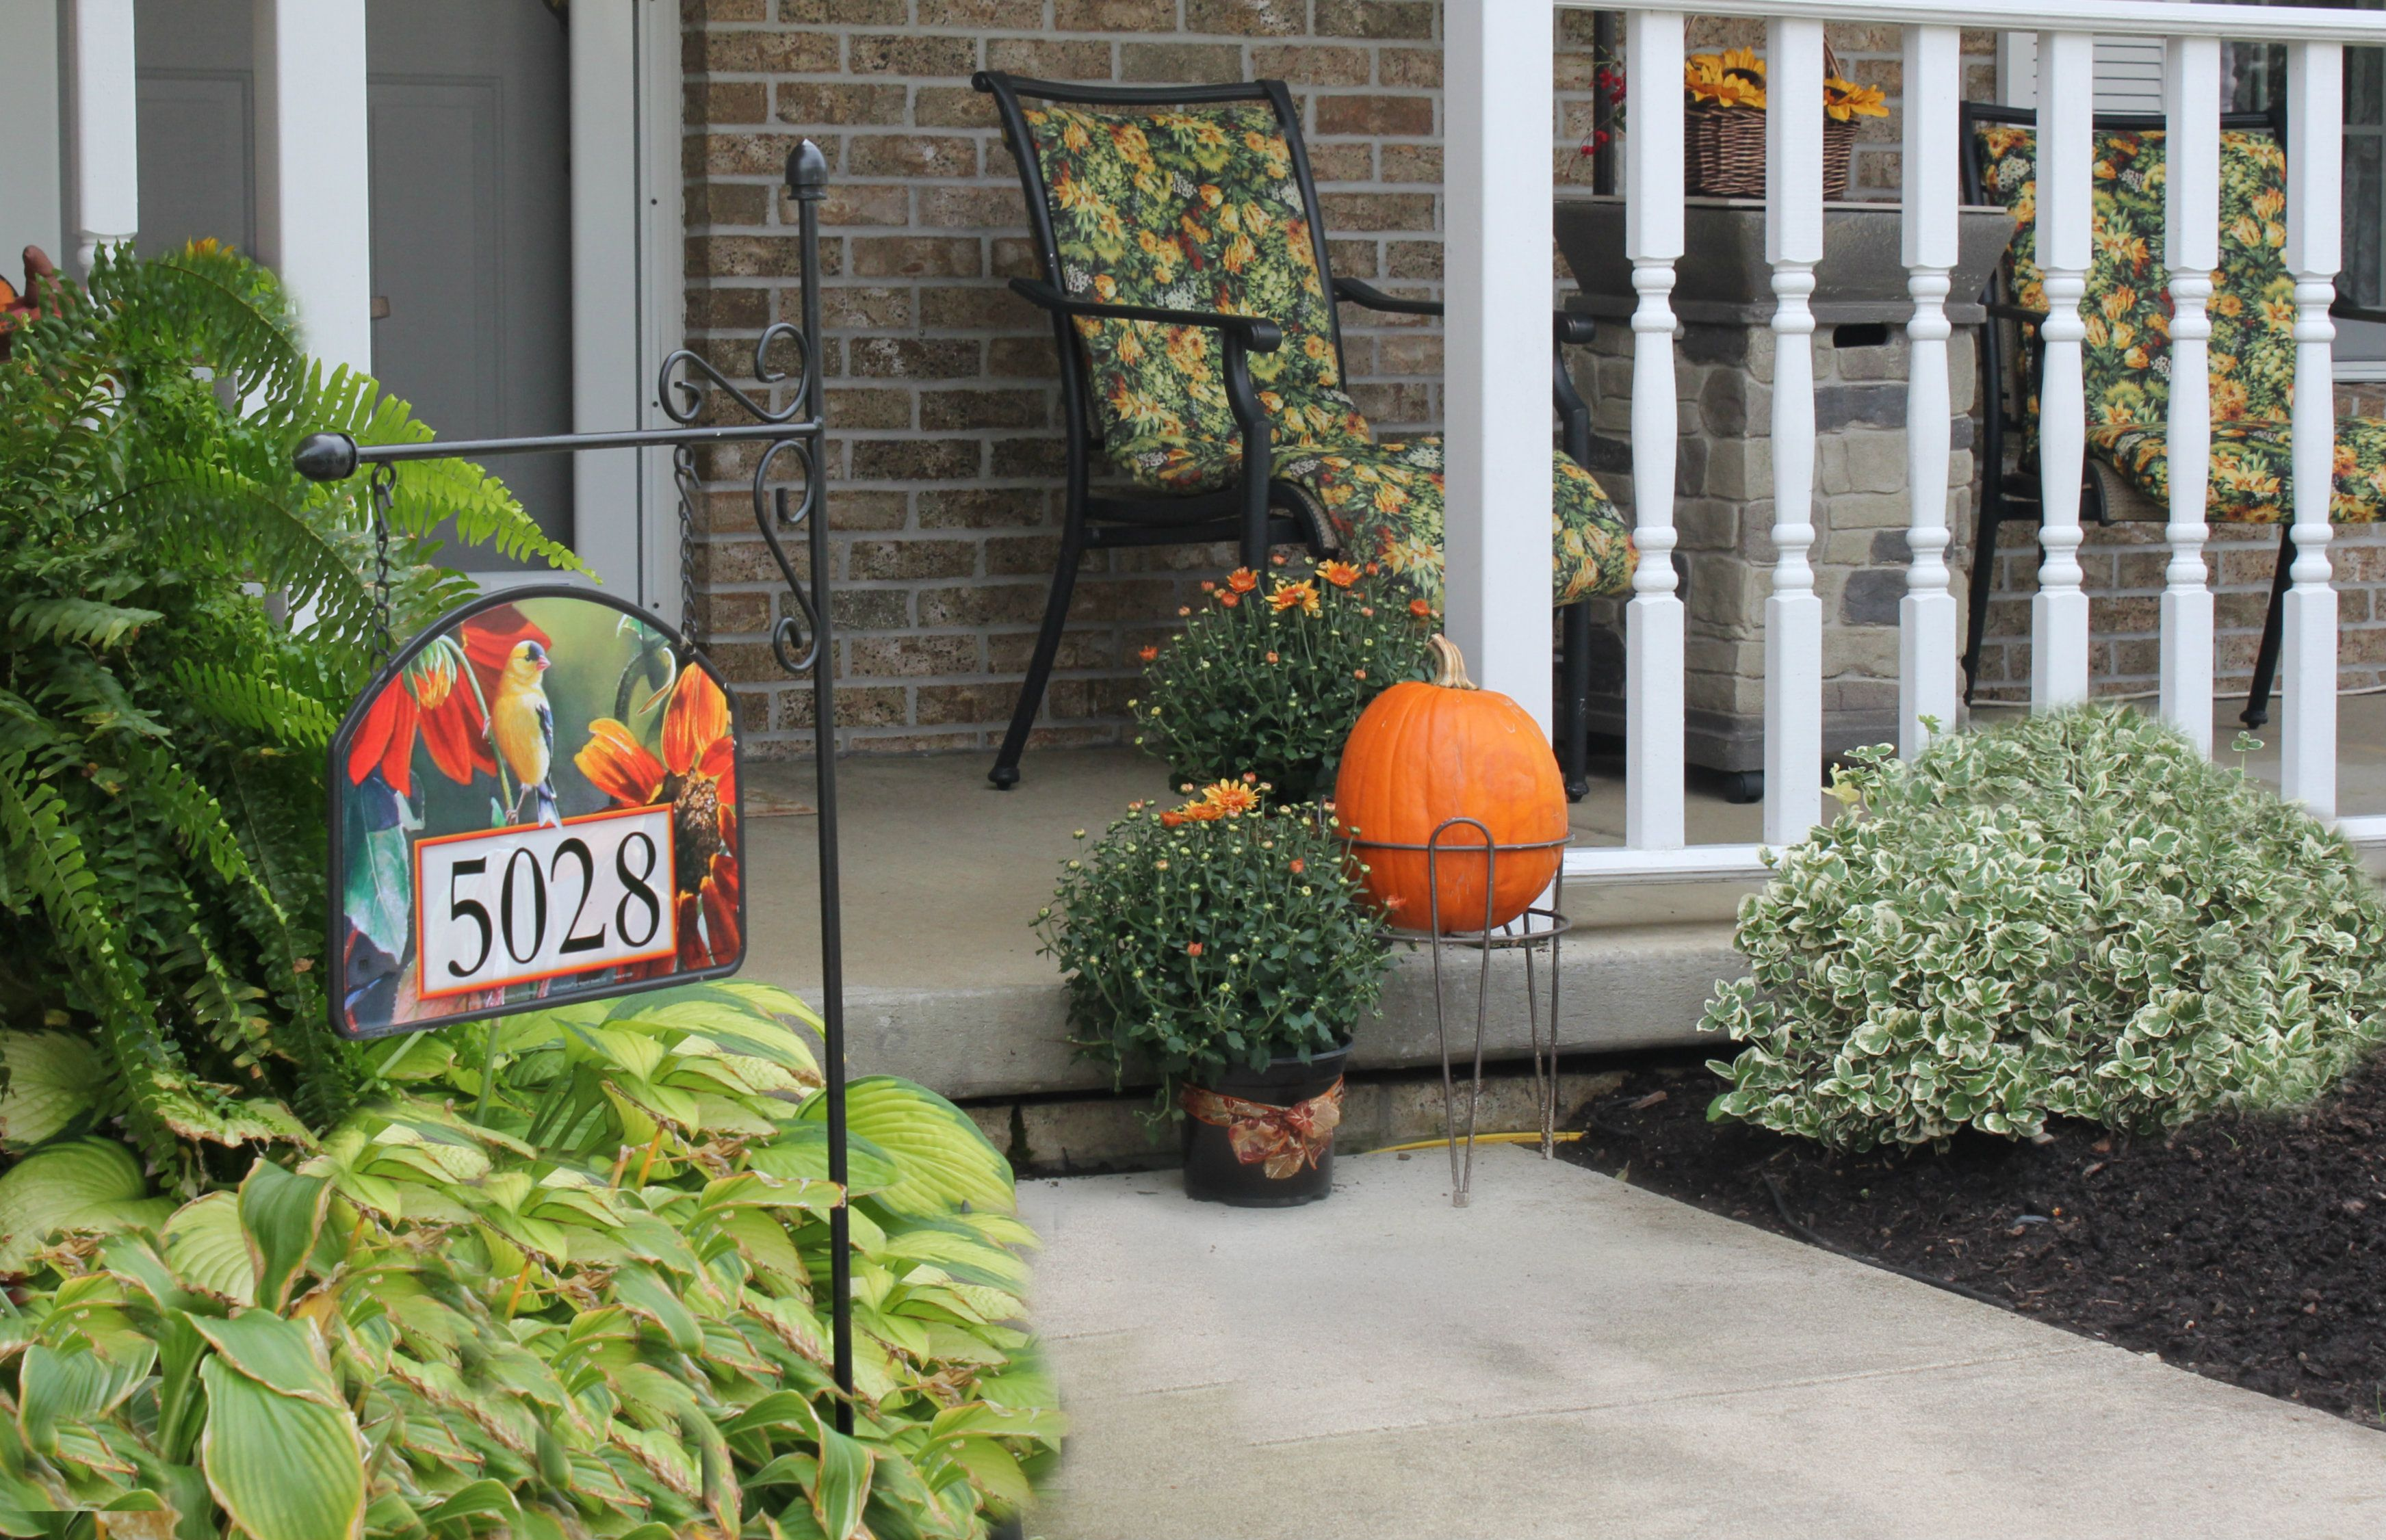 Wild Birds Unlimited is where I purchased magnetic address sign.  . Yard Designs are vinyl coated for long lasting beauty...I'm sure they can be purchased many places.  great for season changes